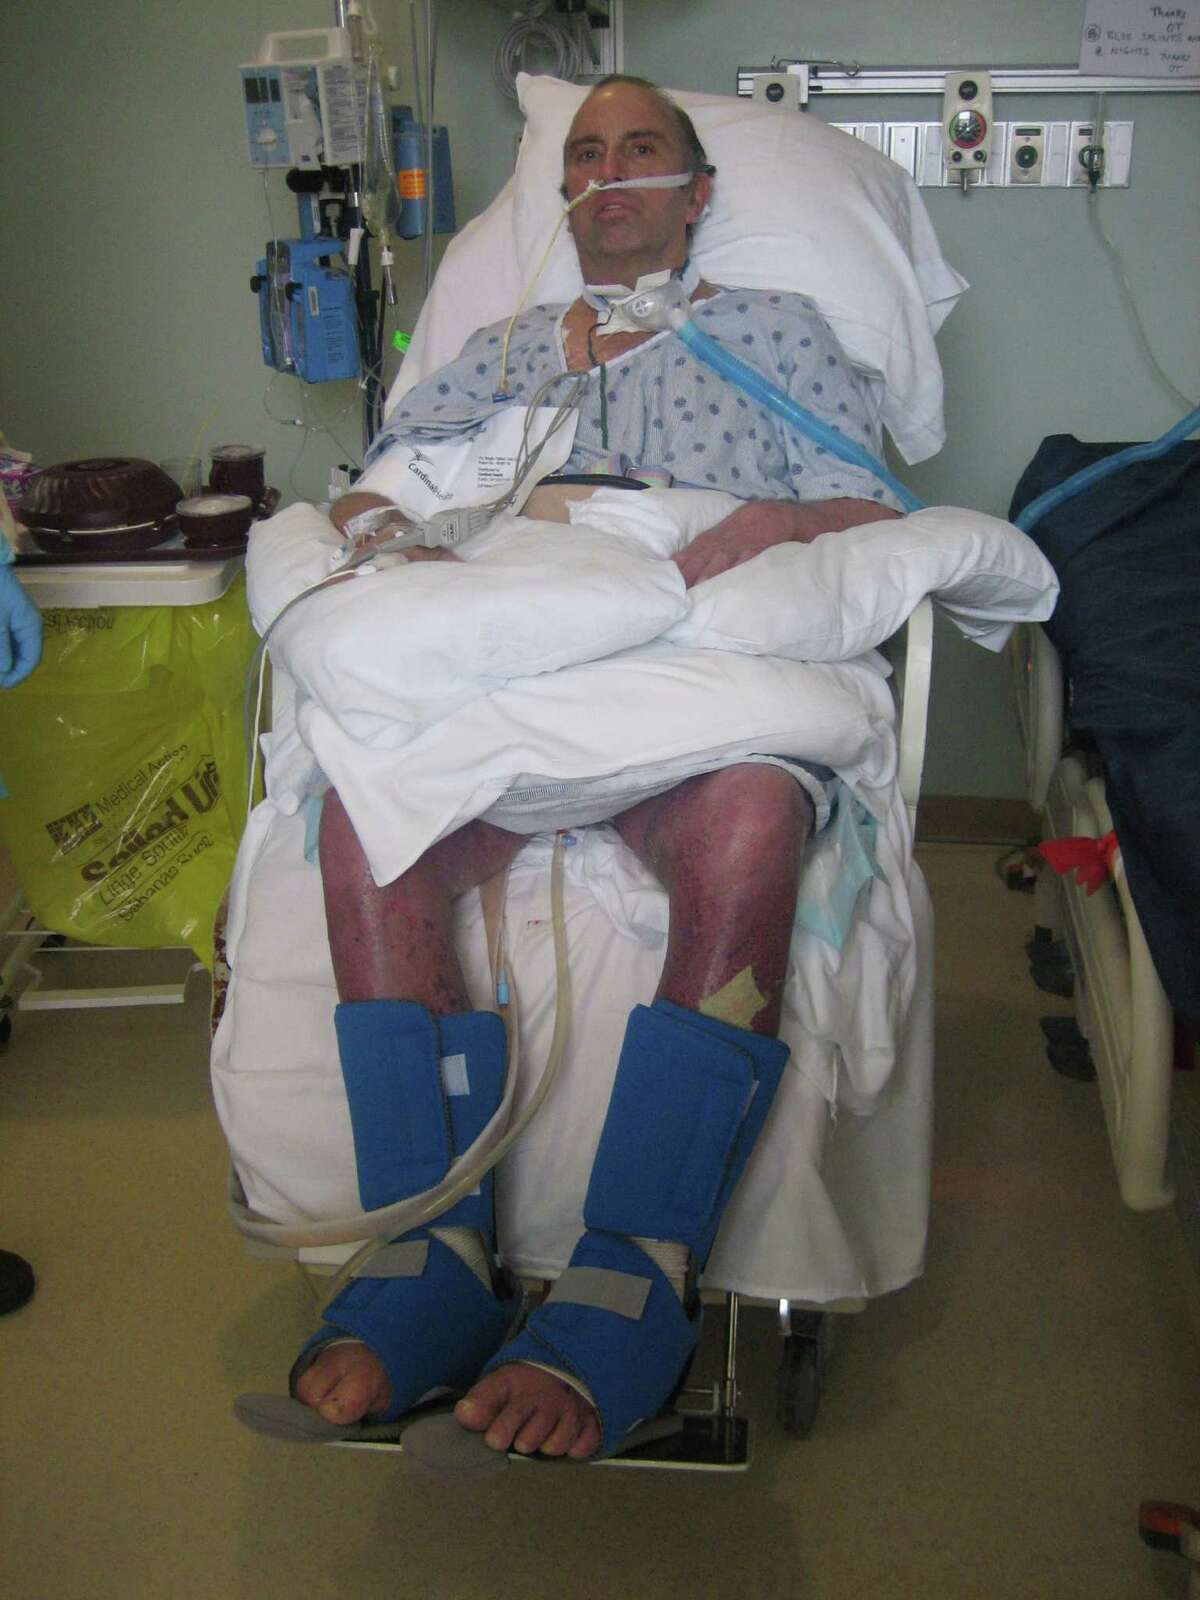 After falling into a scalding pool of water that left his body severely burned, Bobby Roye spent months in the hospital healing. His body was burned from his toes to a few inches above his belly button, almost a quarter of the burns were third degree.